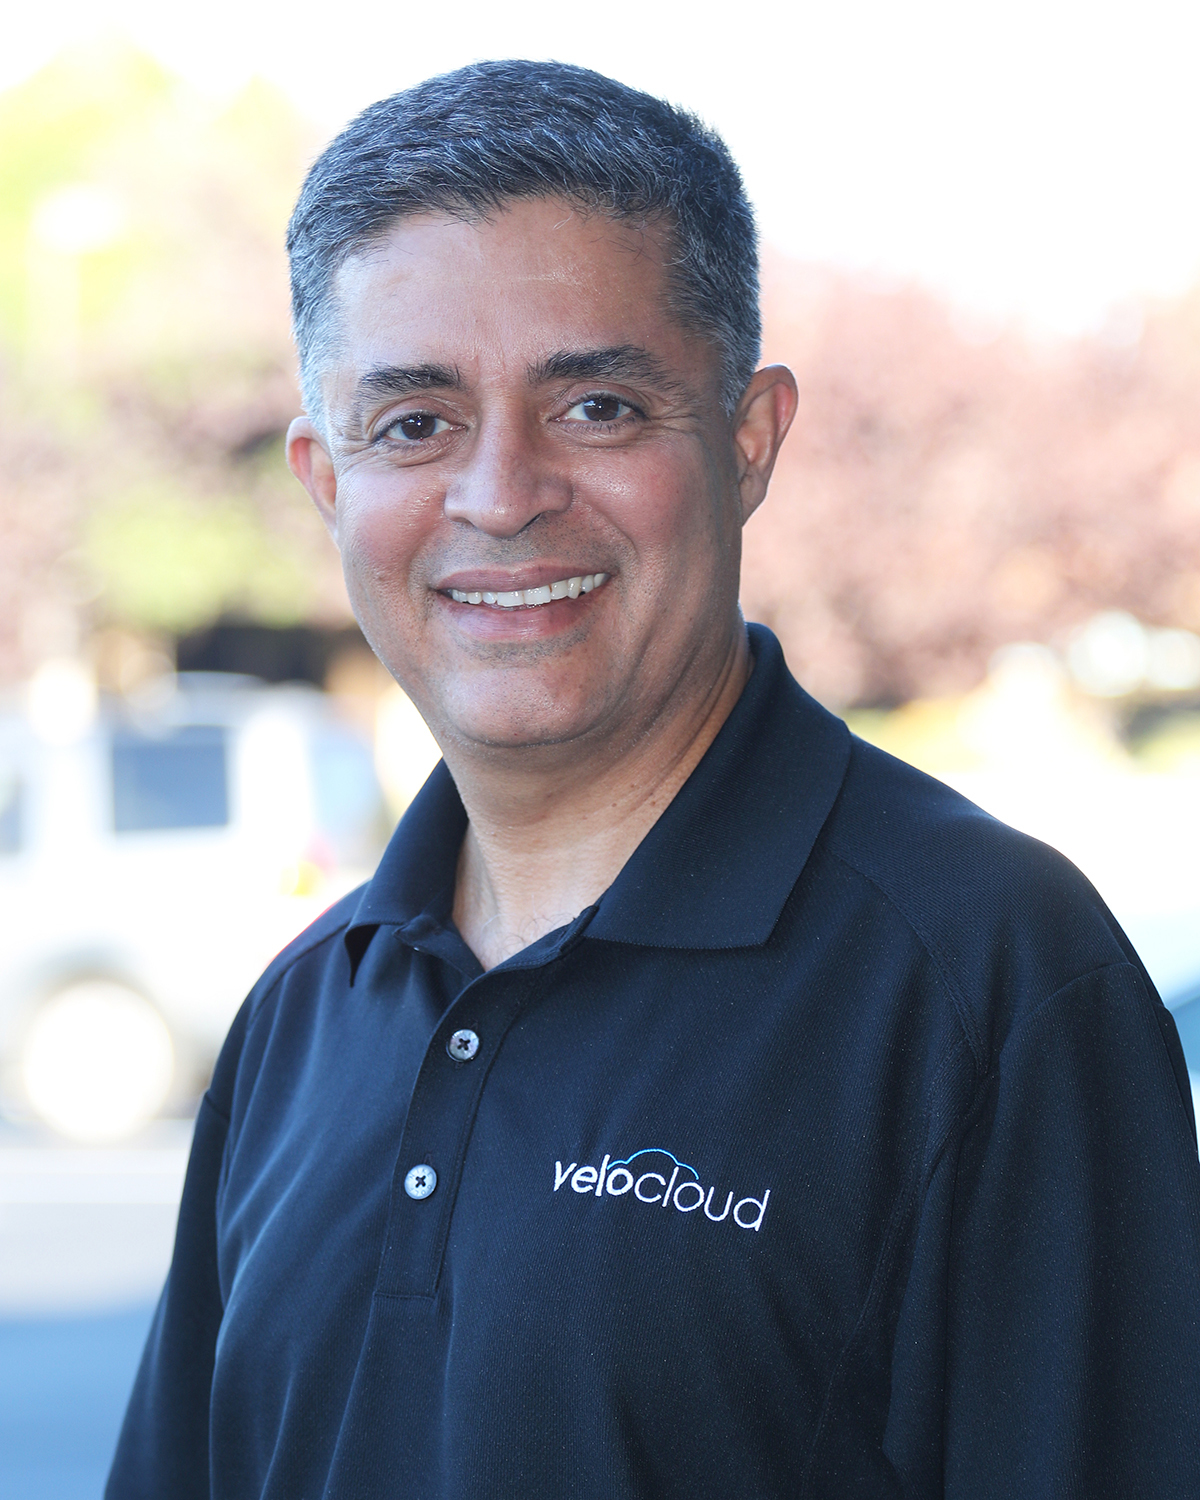 VeloCloud CEO and Co-Founder Sanjay Uppal has been invited to present VeloCloud Cloud-Delivered SD-WAN at the SD-WAN Strategies for Success and Rutberg FM 2017 events this month. (Photo: Business Wire)